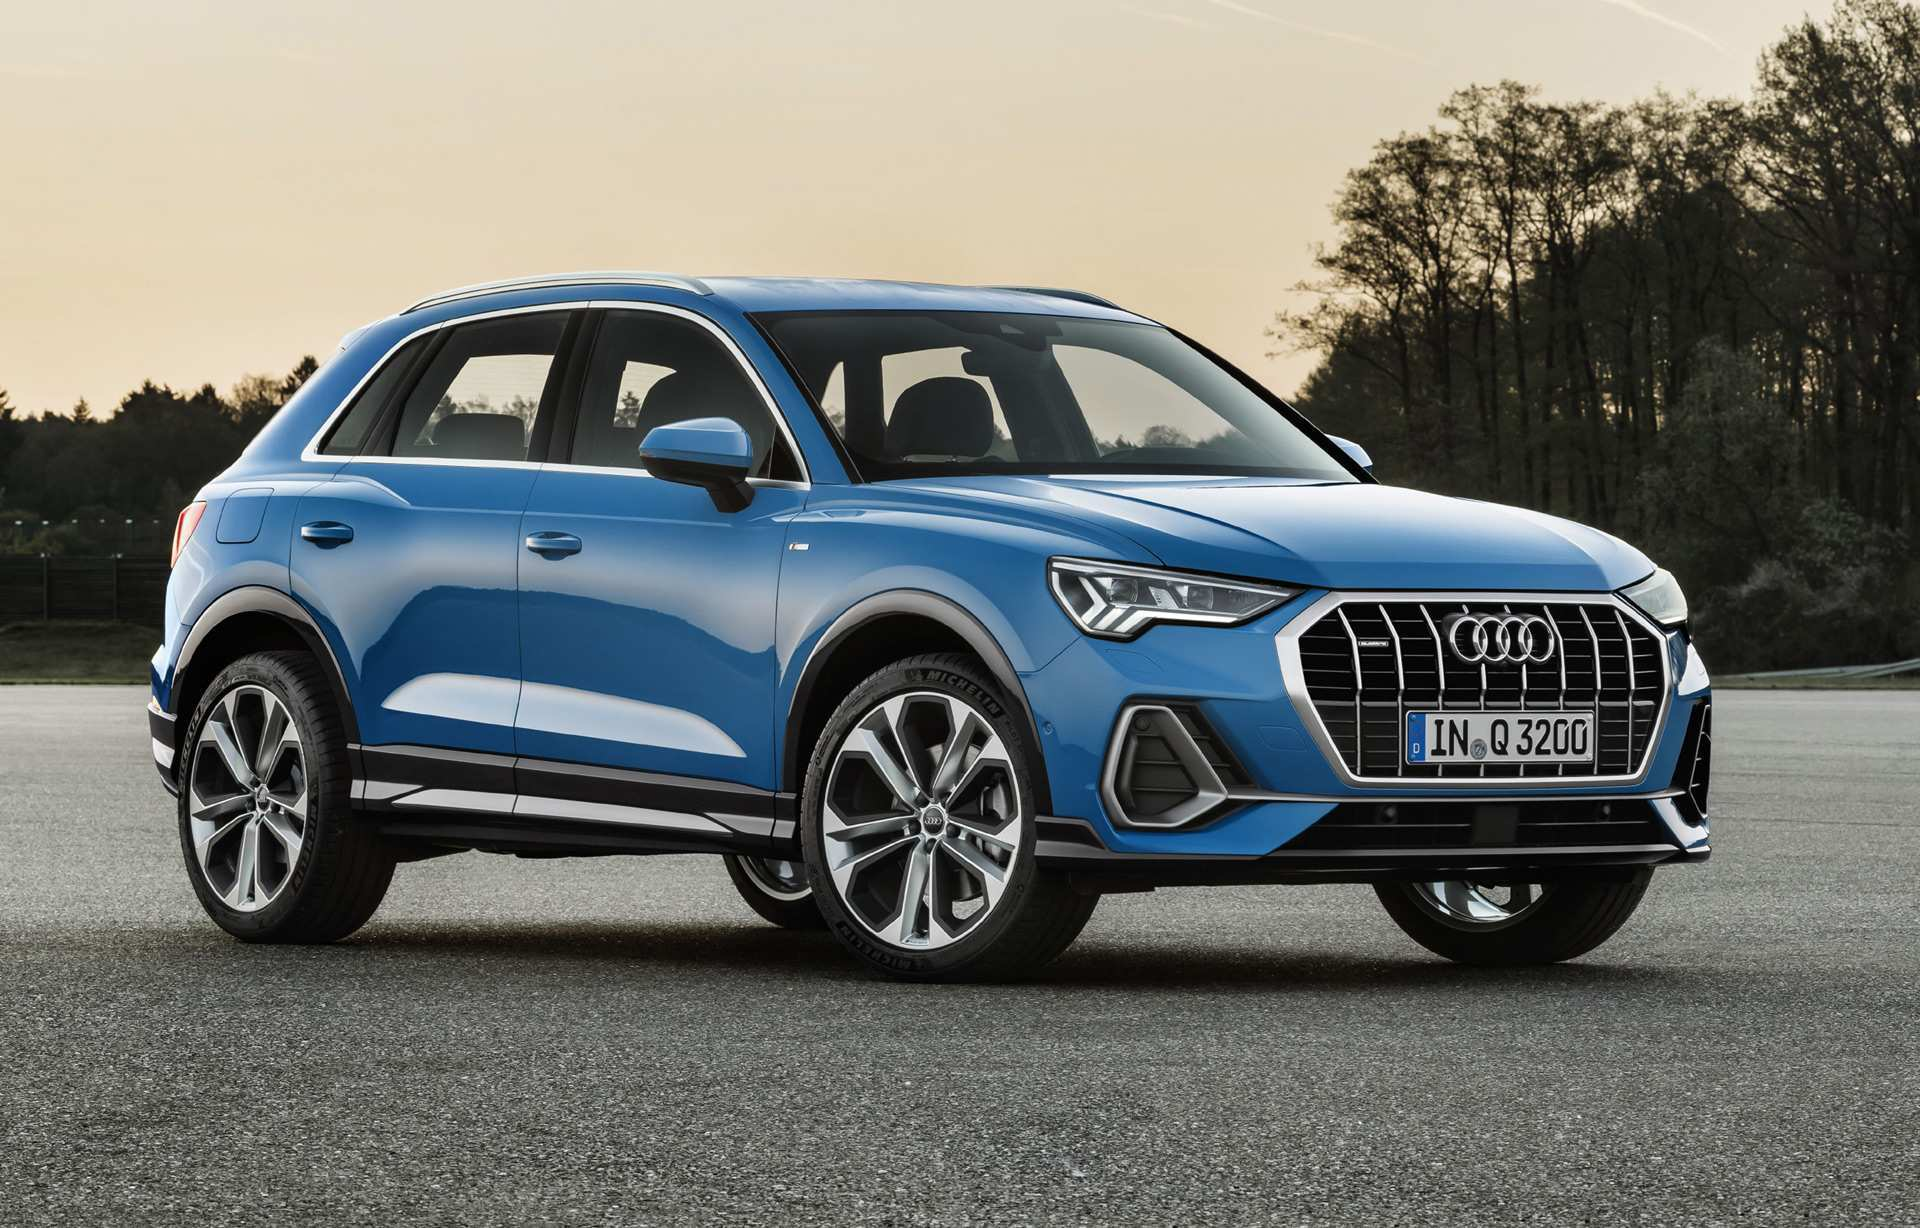 80 New 2019 Audi Q3 Dimensions Rumors for 2019 Audi Q3 Dimensions